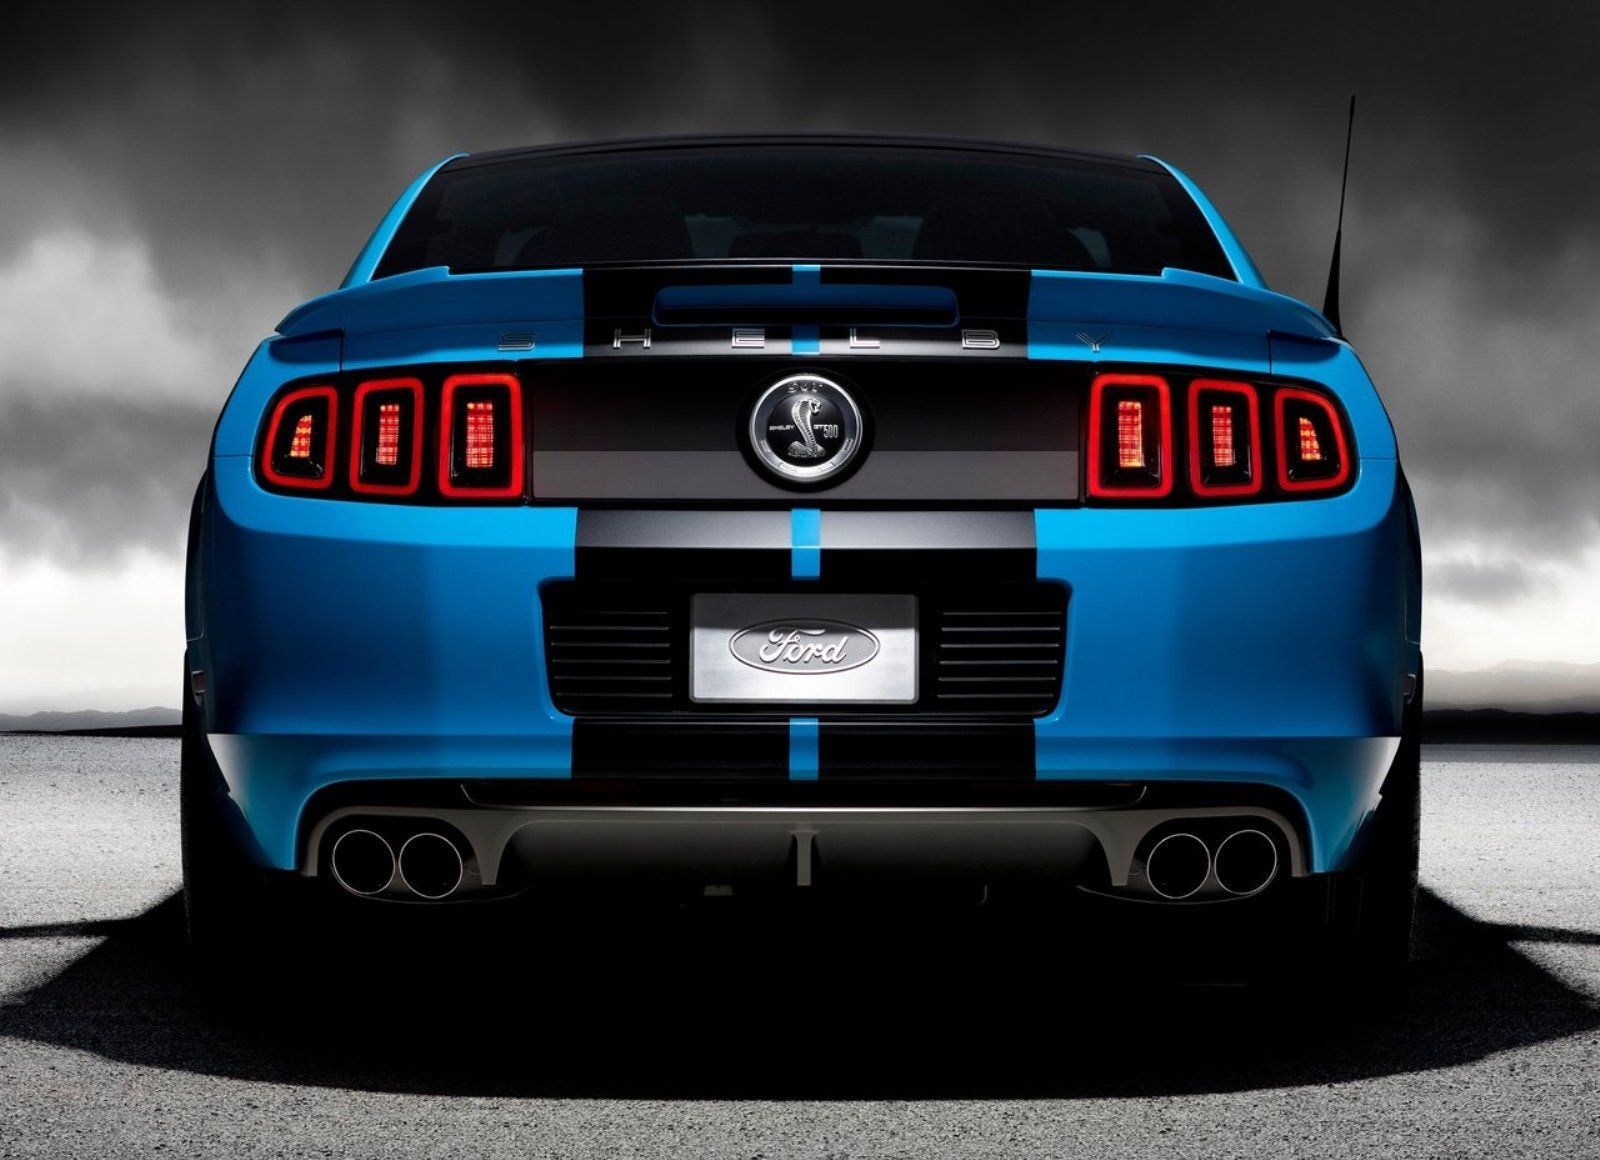 The 2017 ford mustang shelby gt 500 experience this super car for yourself even build price your very own 2017 ford mustang shelby